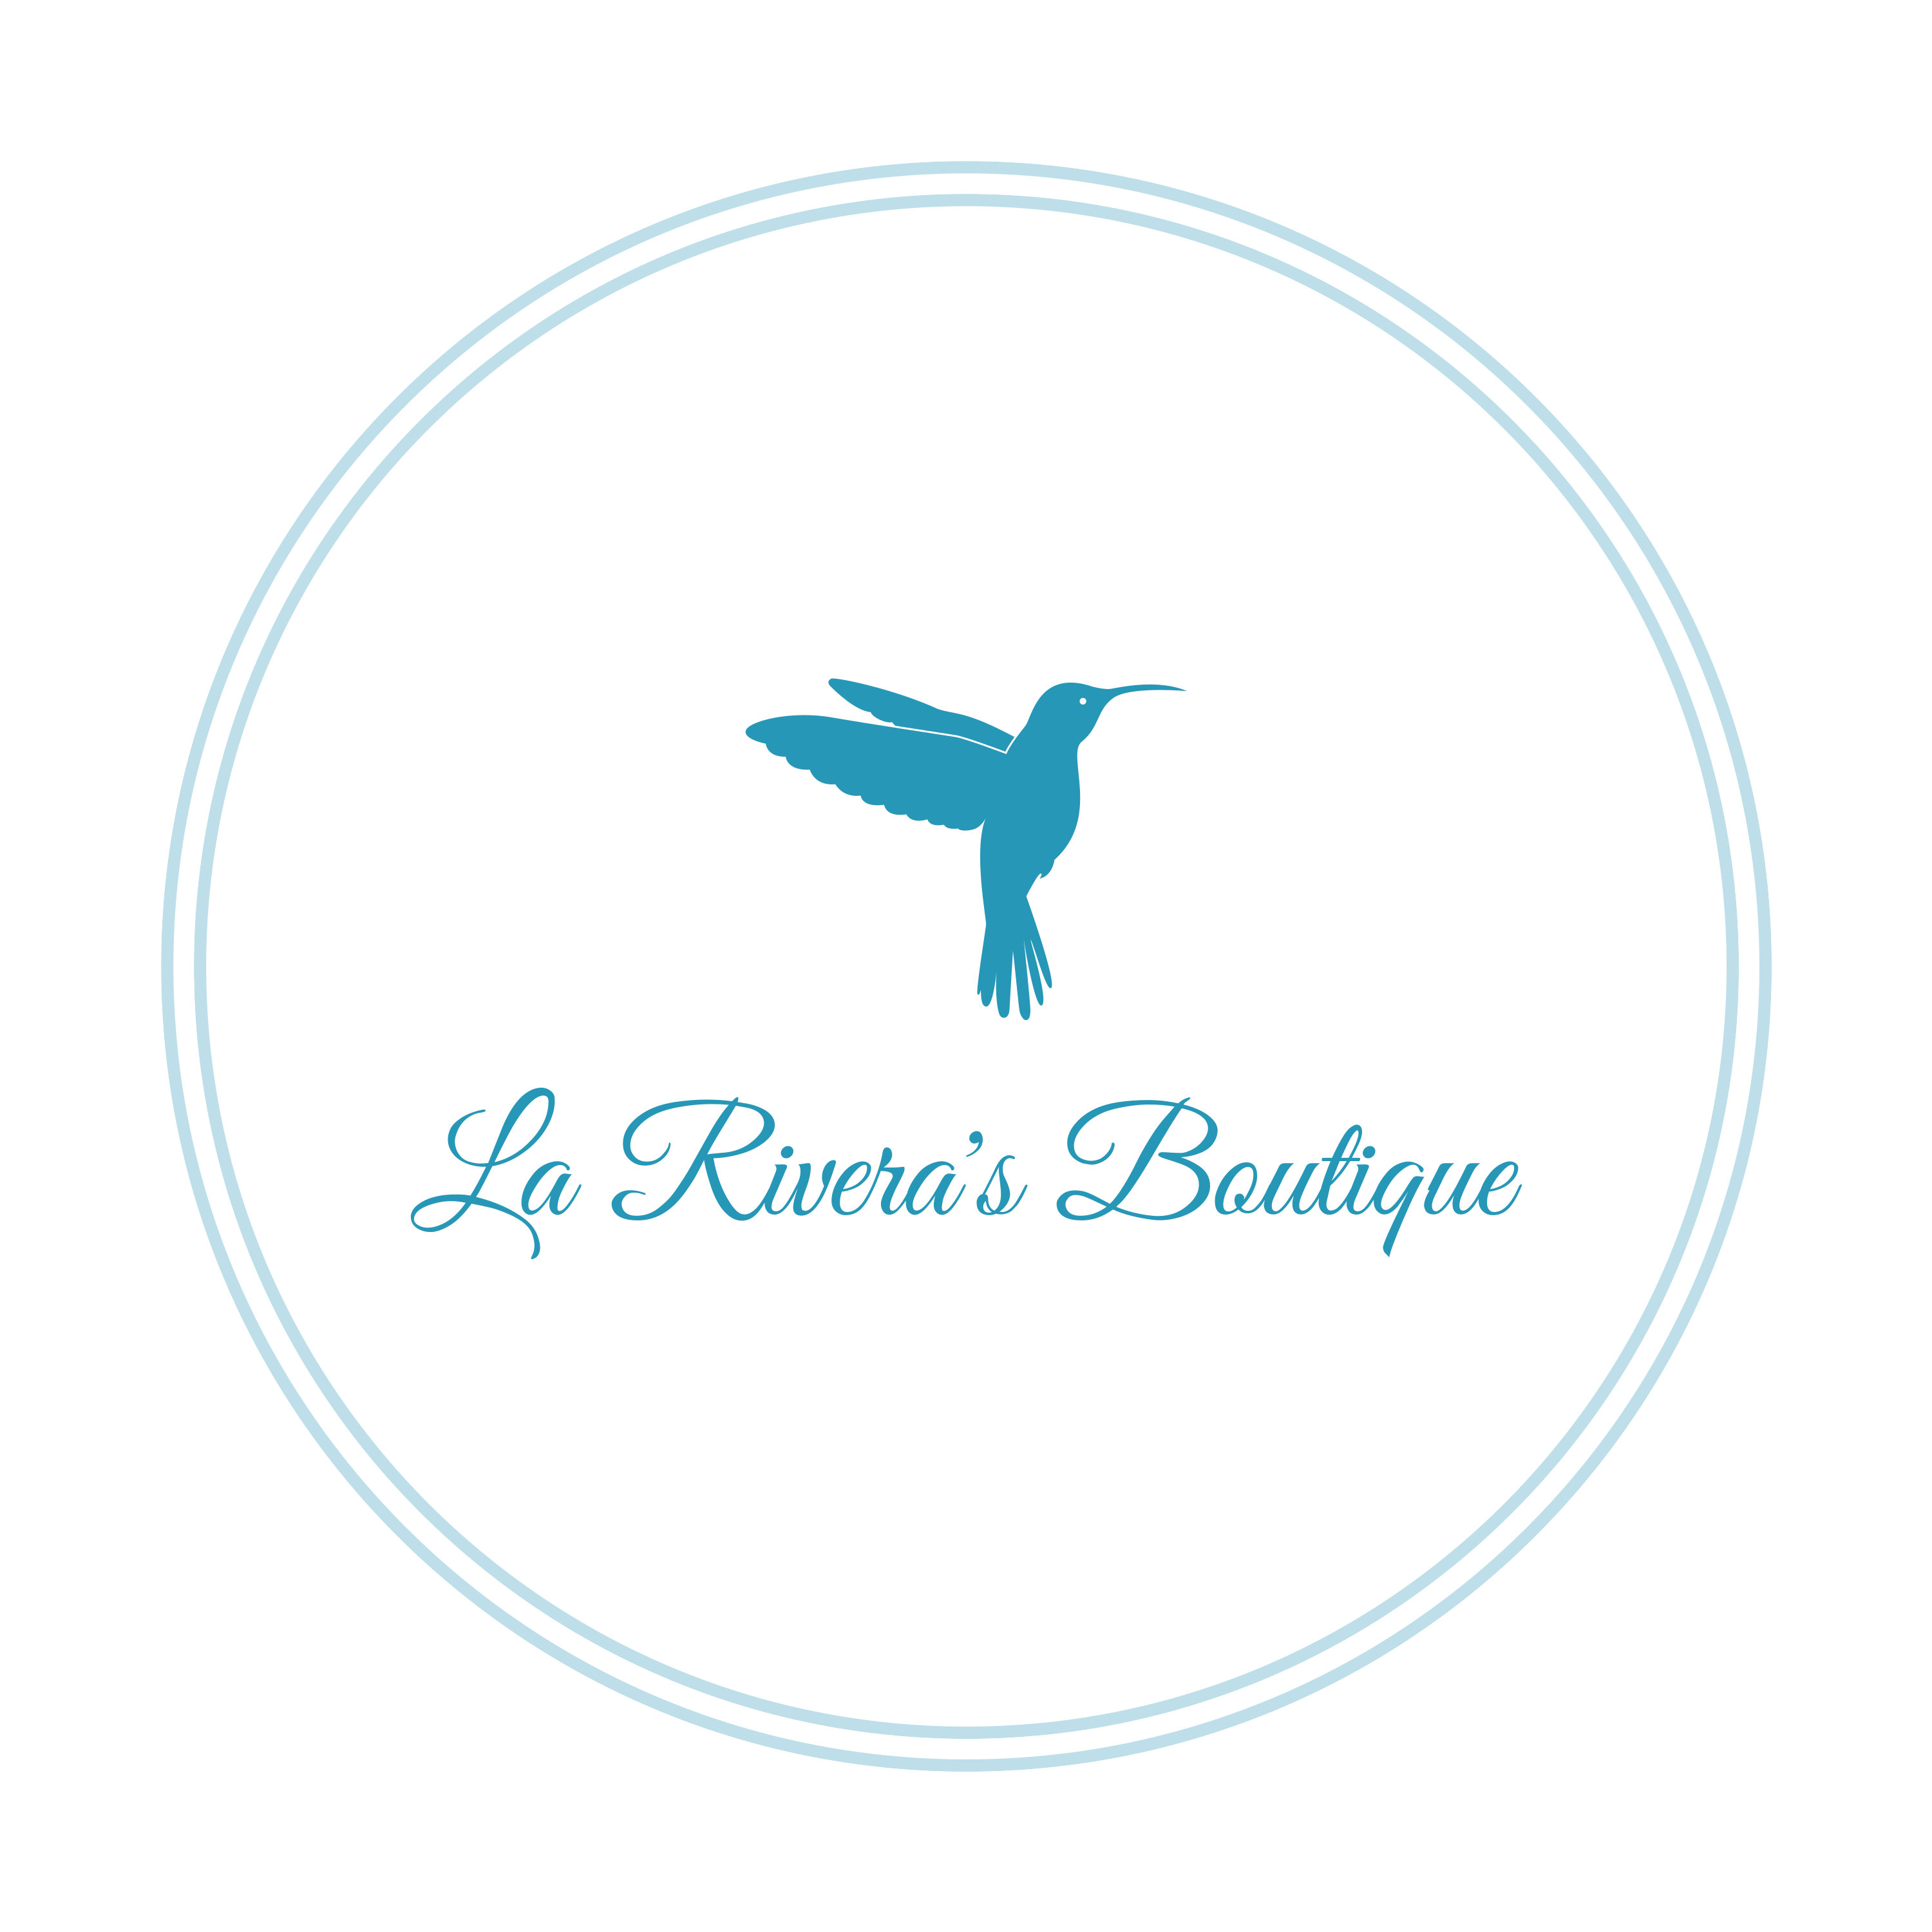 La Rivera's Boutique